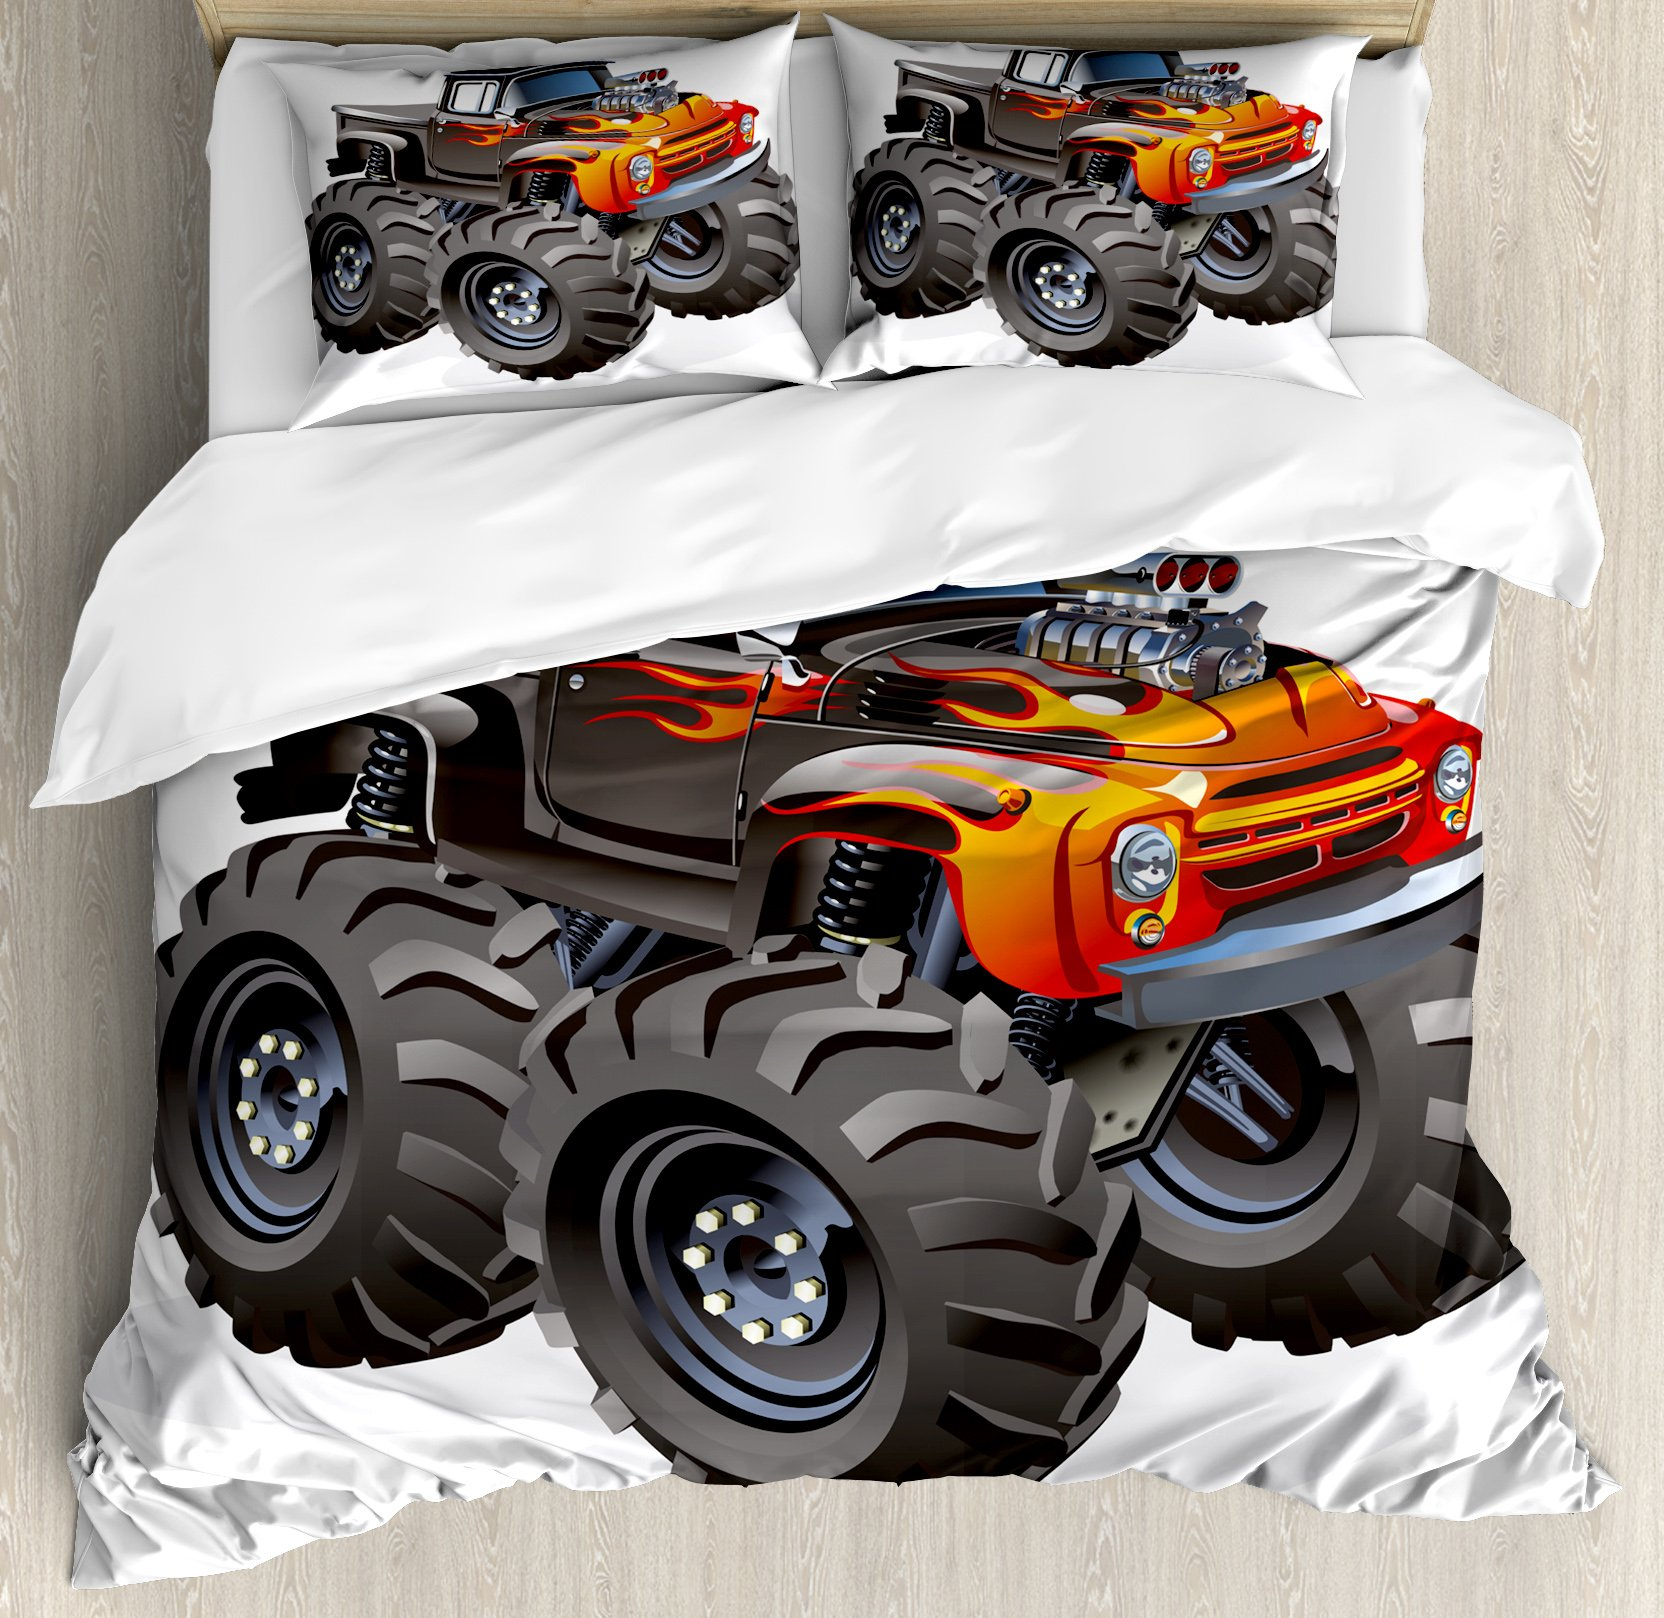 Lunarable Boy's Room Duvet Cover Set Queen Size, Monster Truck in Flame Big Hobby Sports Exotic Automobile Style Image, Decorative 3 Piece Bedding Set with 2 Pillow Shams, Charcoal Grey Orange by Lunarable (Image #1)